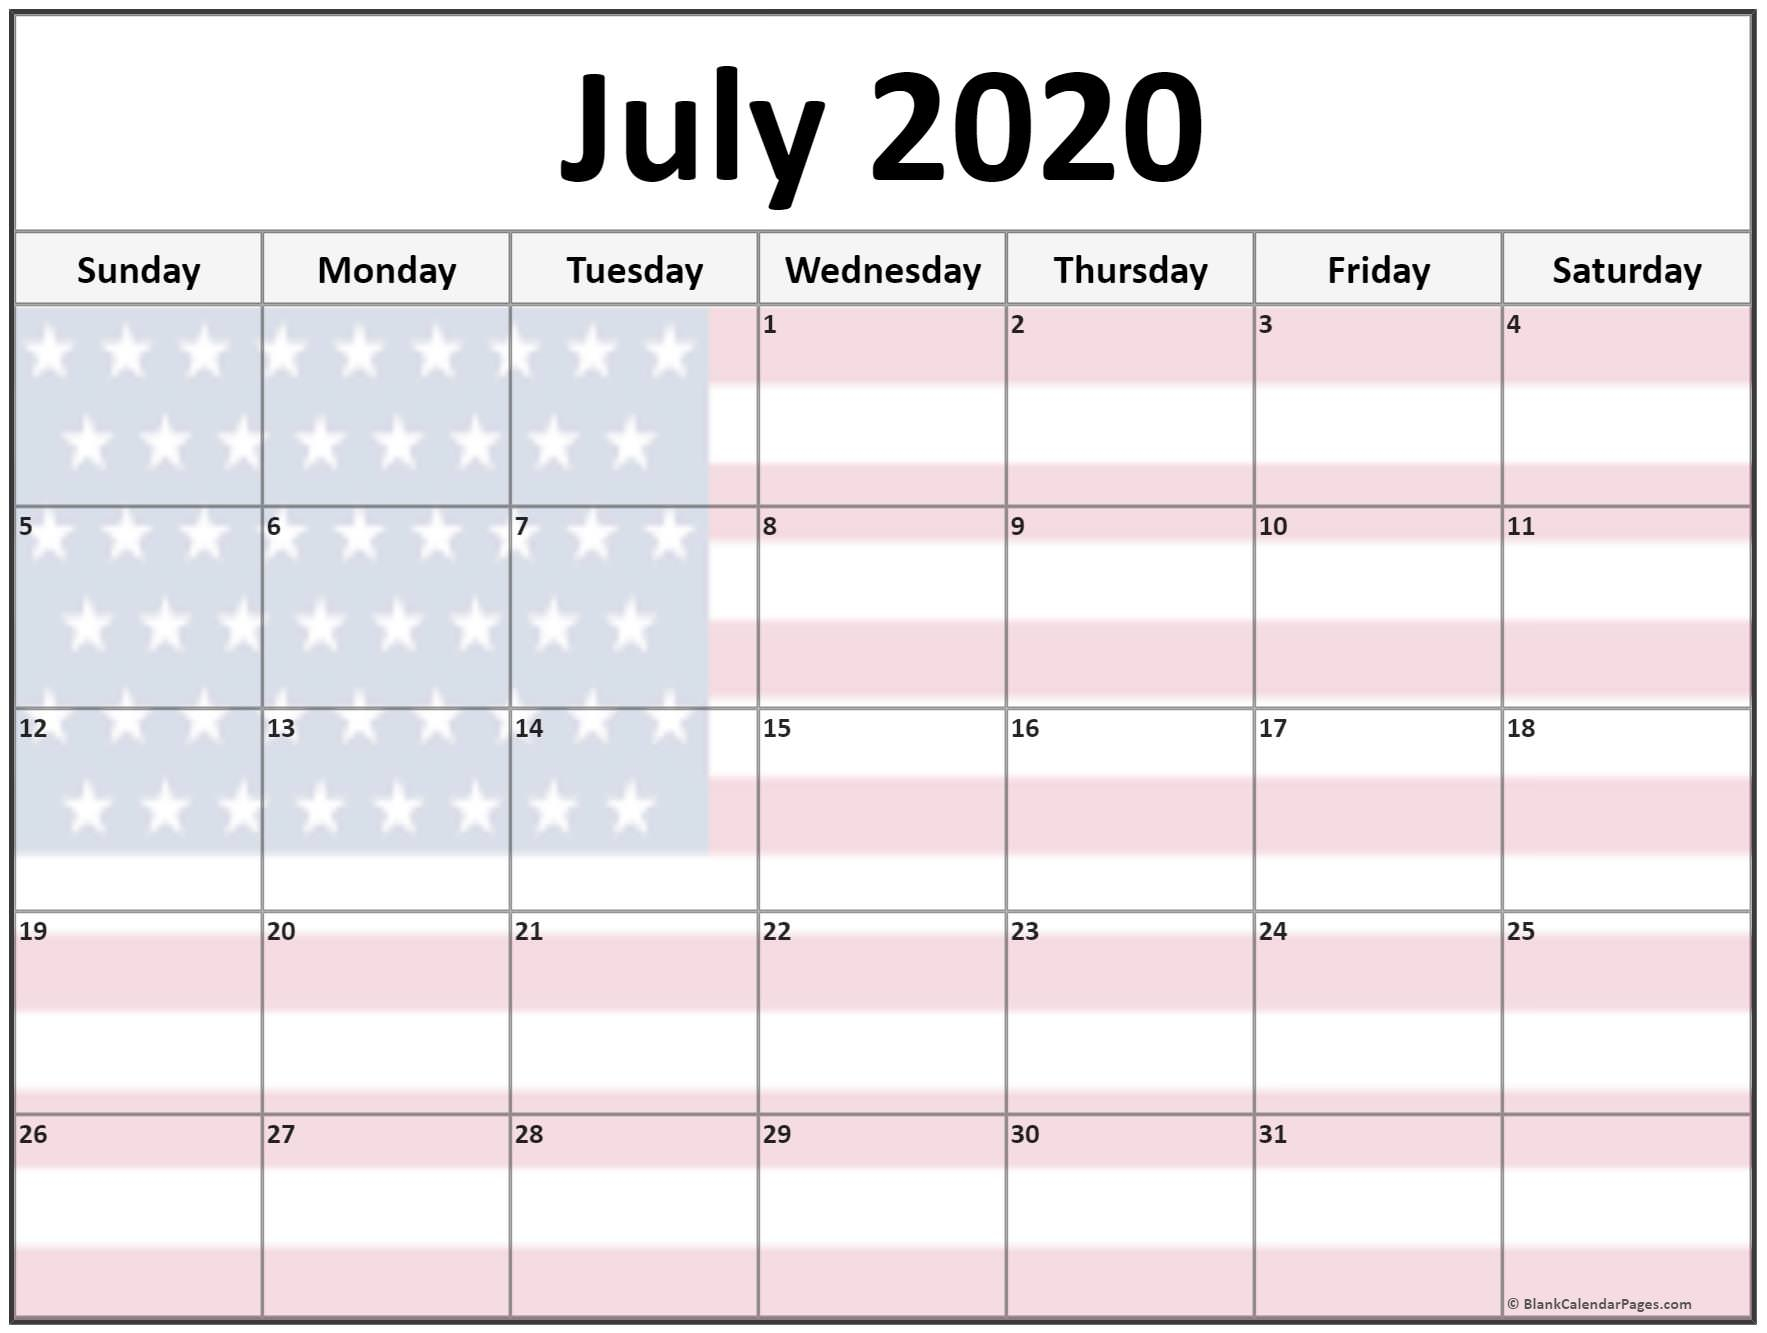 Collection Of July 2020 Photo Calendars With Image Filters.